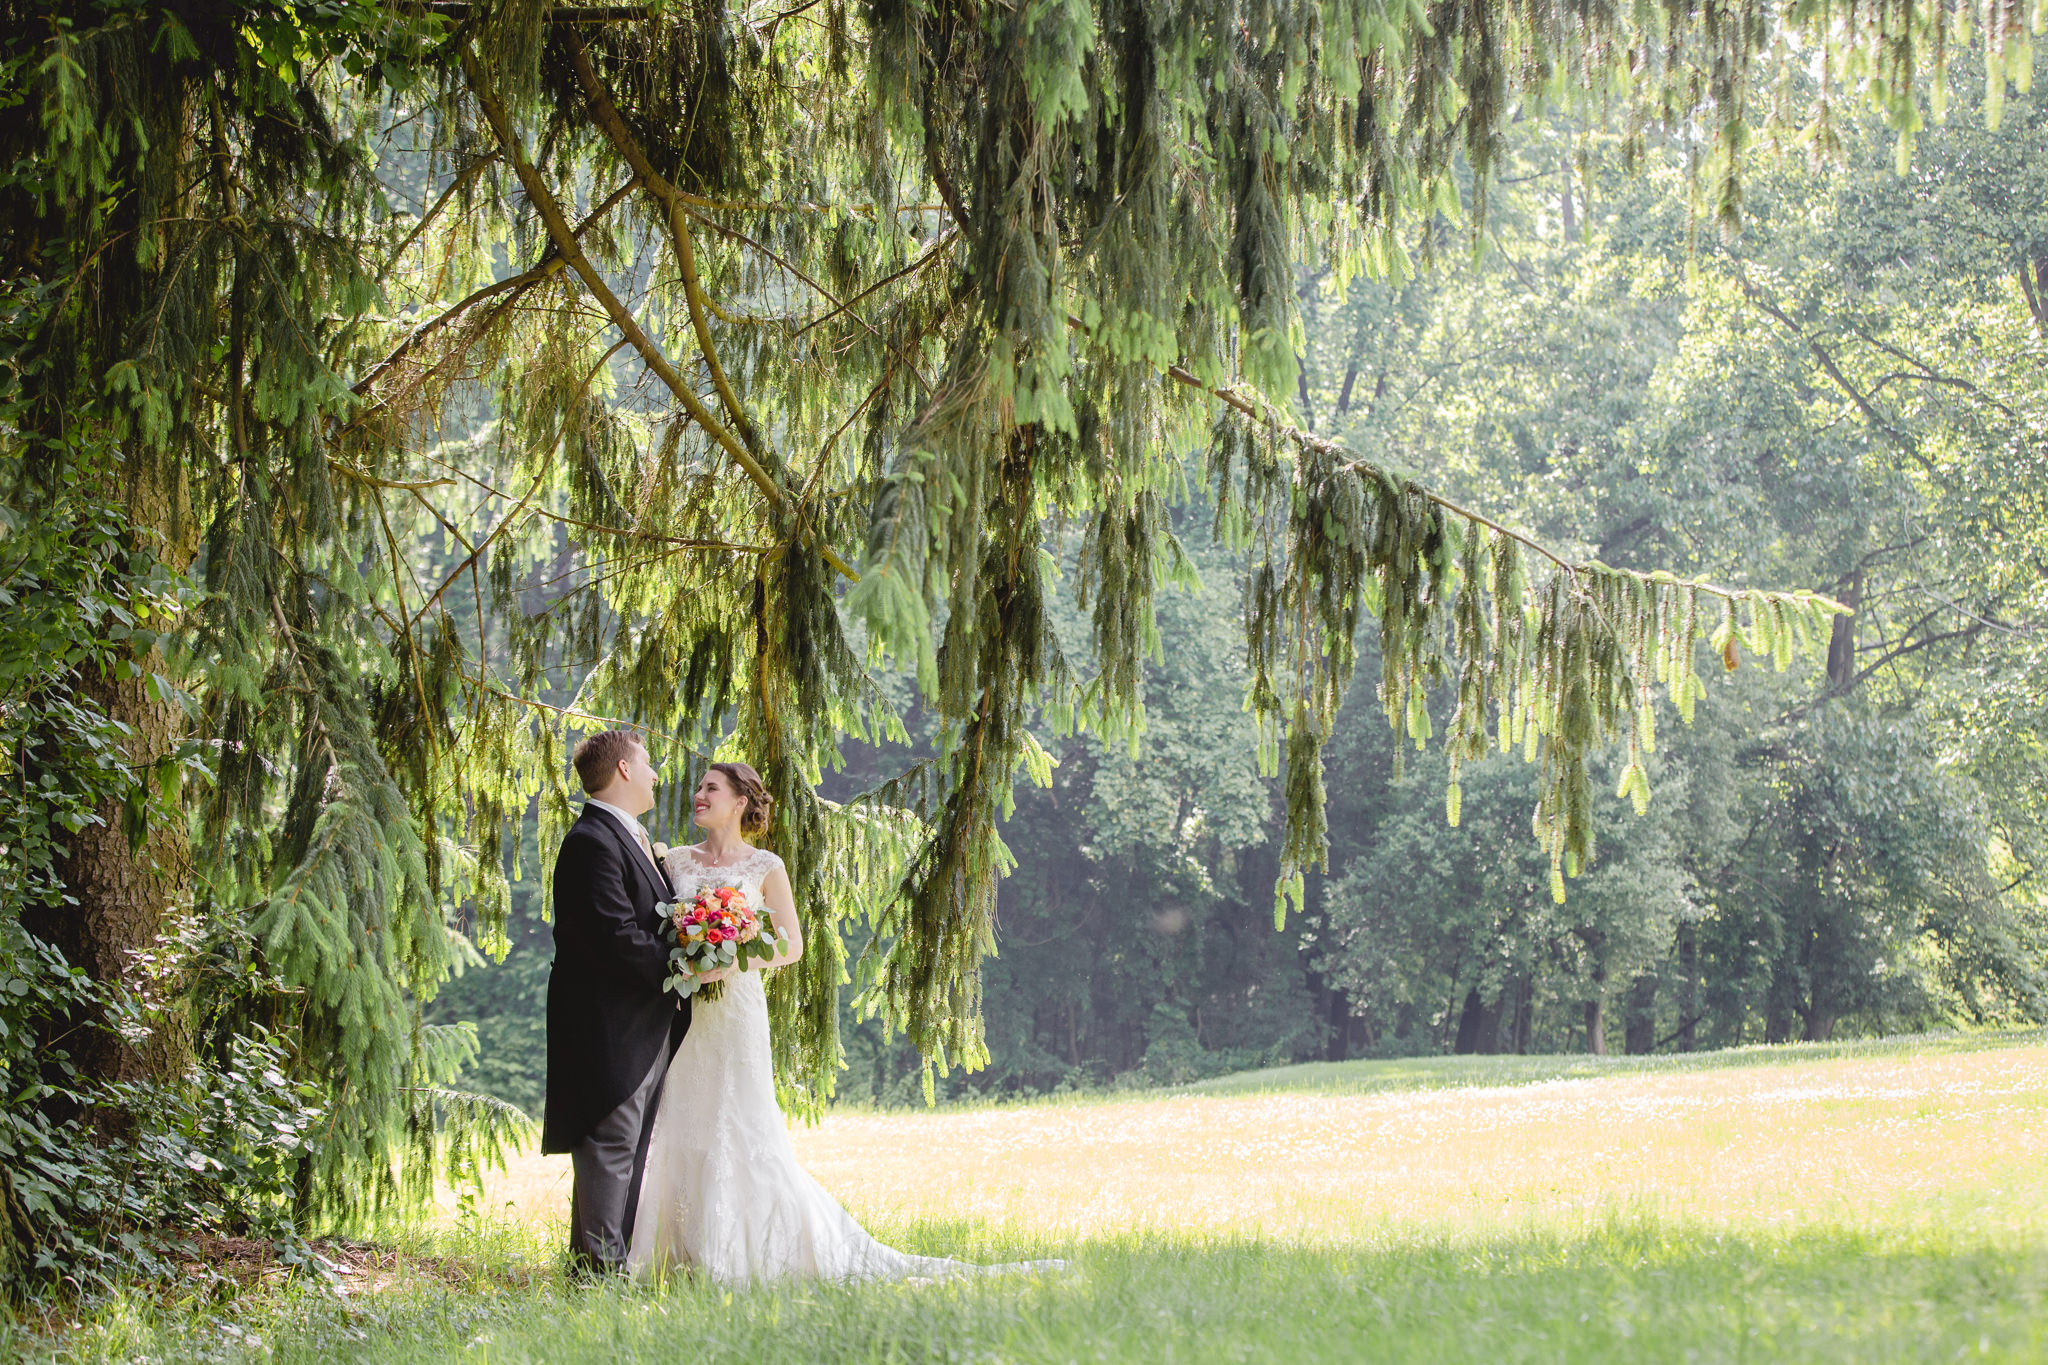 Bride & groom pose for portraits at Shannopin Country Club wedding